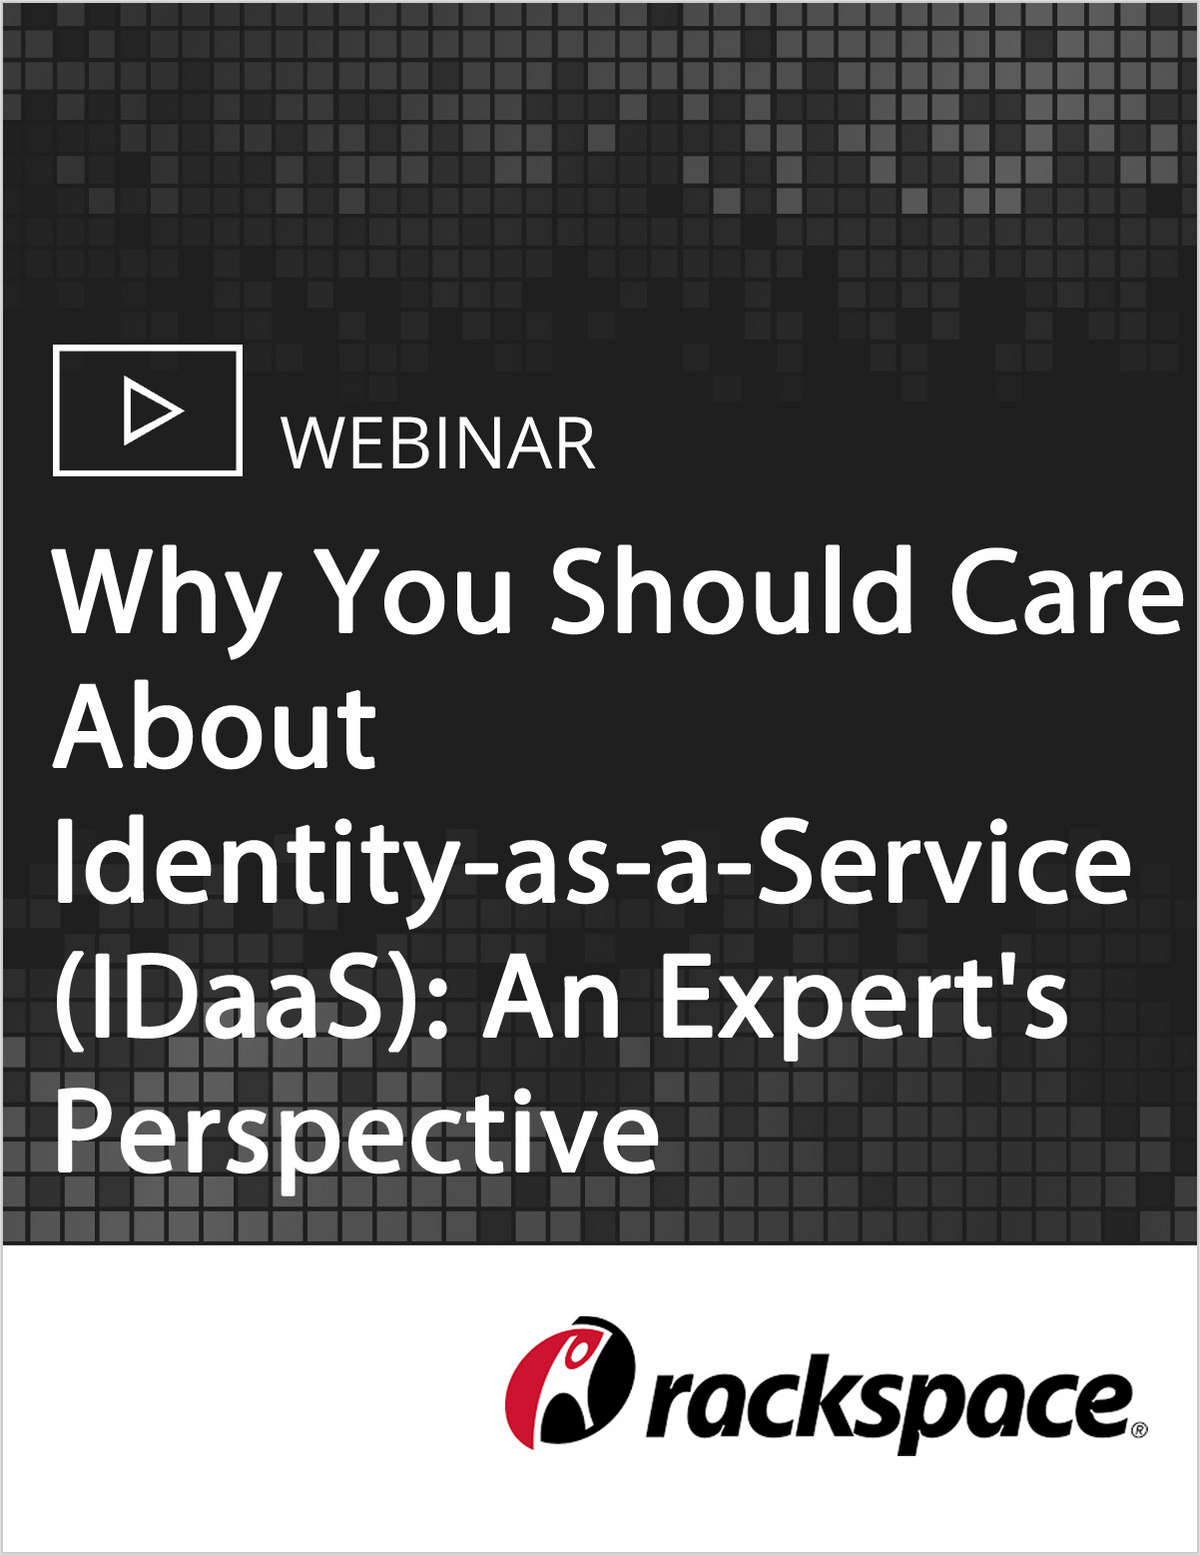 Why You Should Care About Identity-as-a-Service (IDaaS): An Expert's perspective